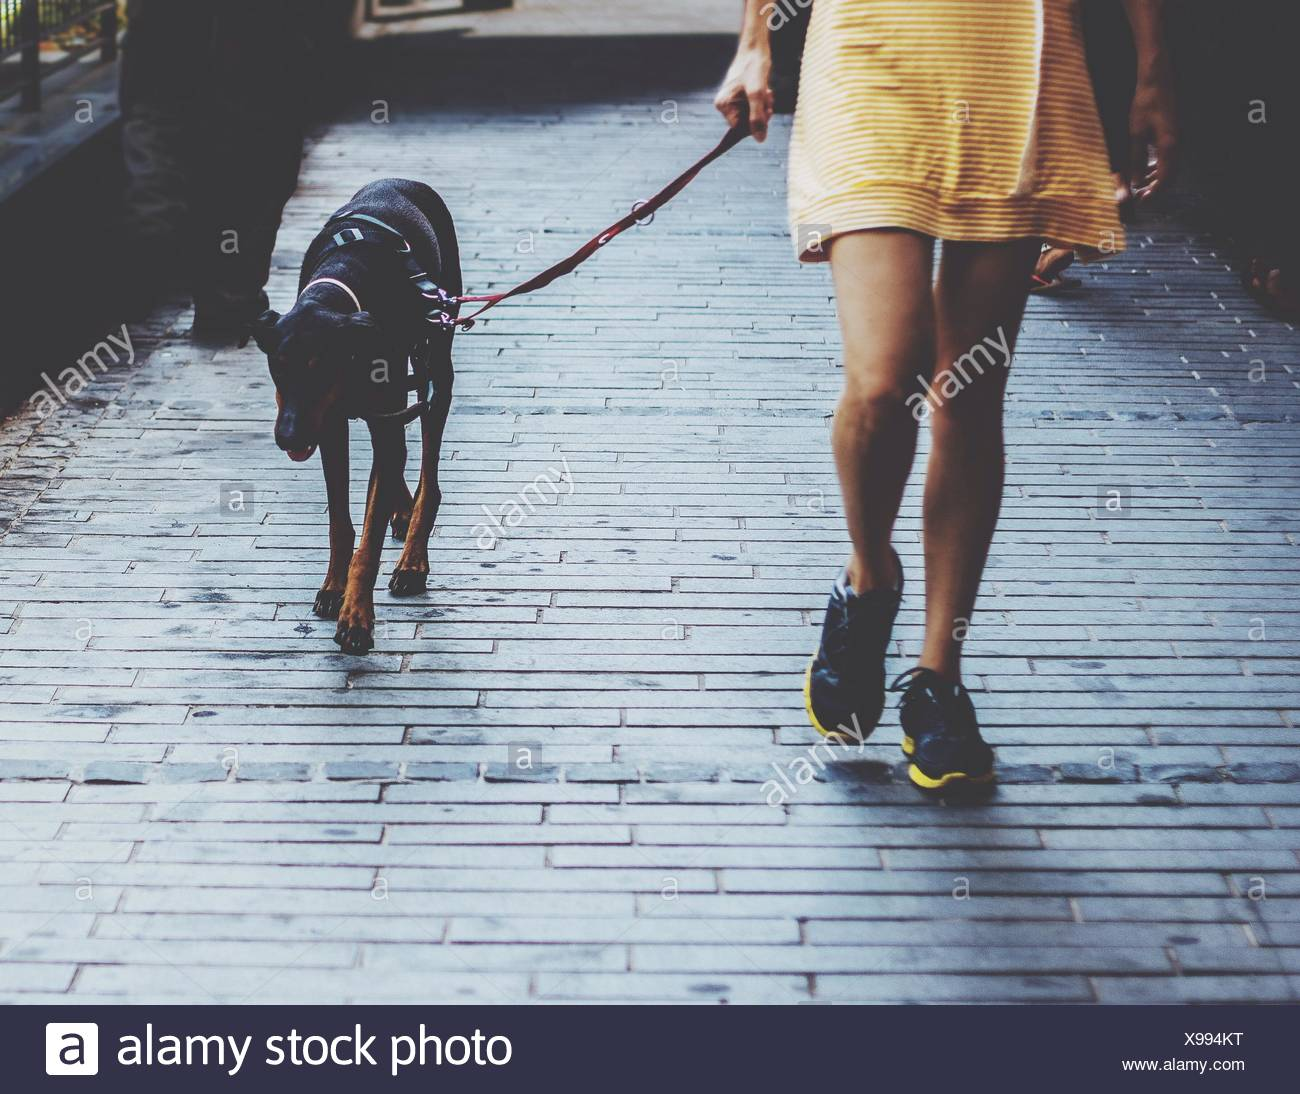 Woman Walking With Dog - Stock Image